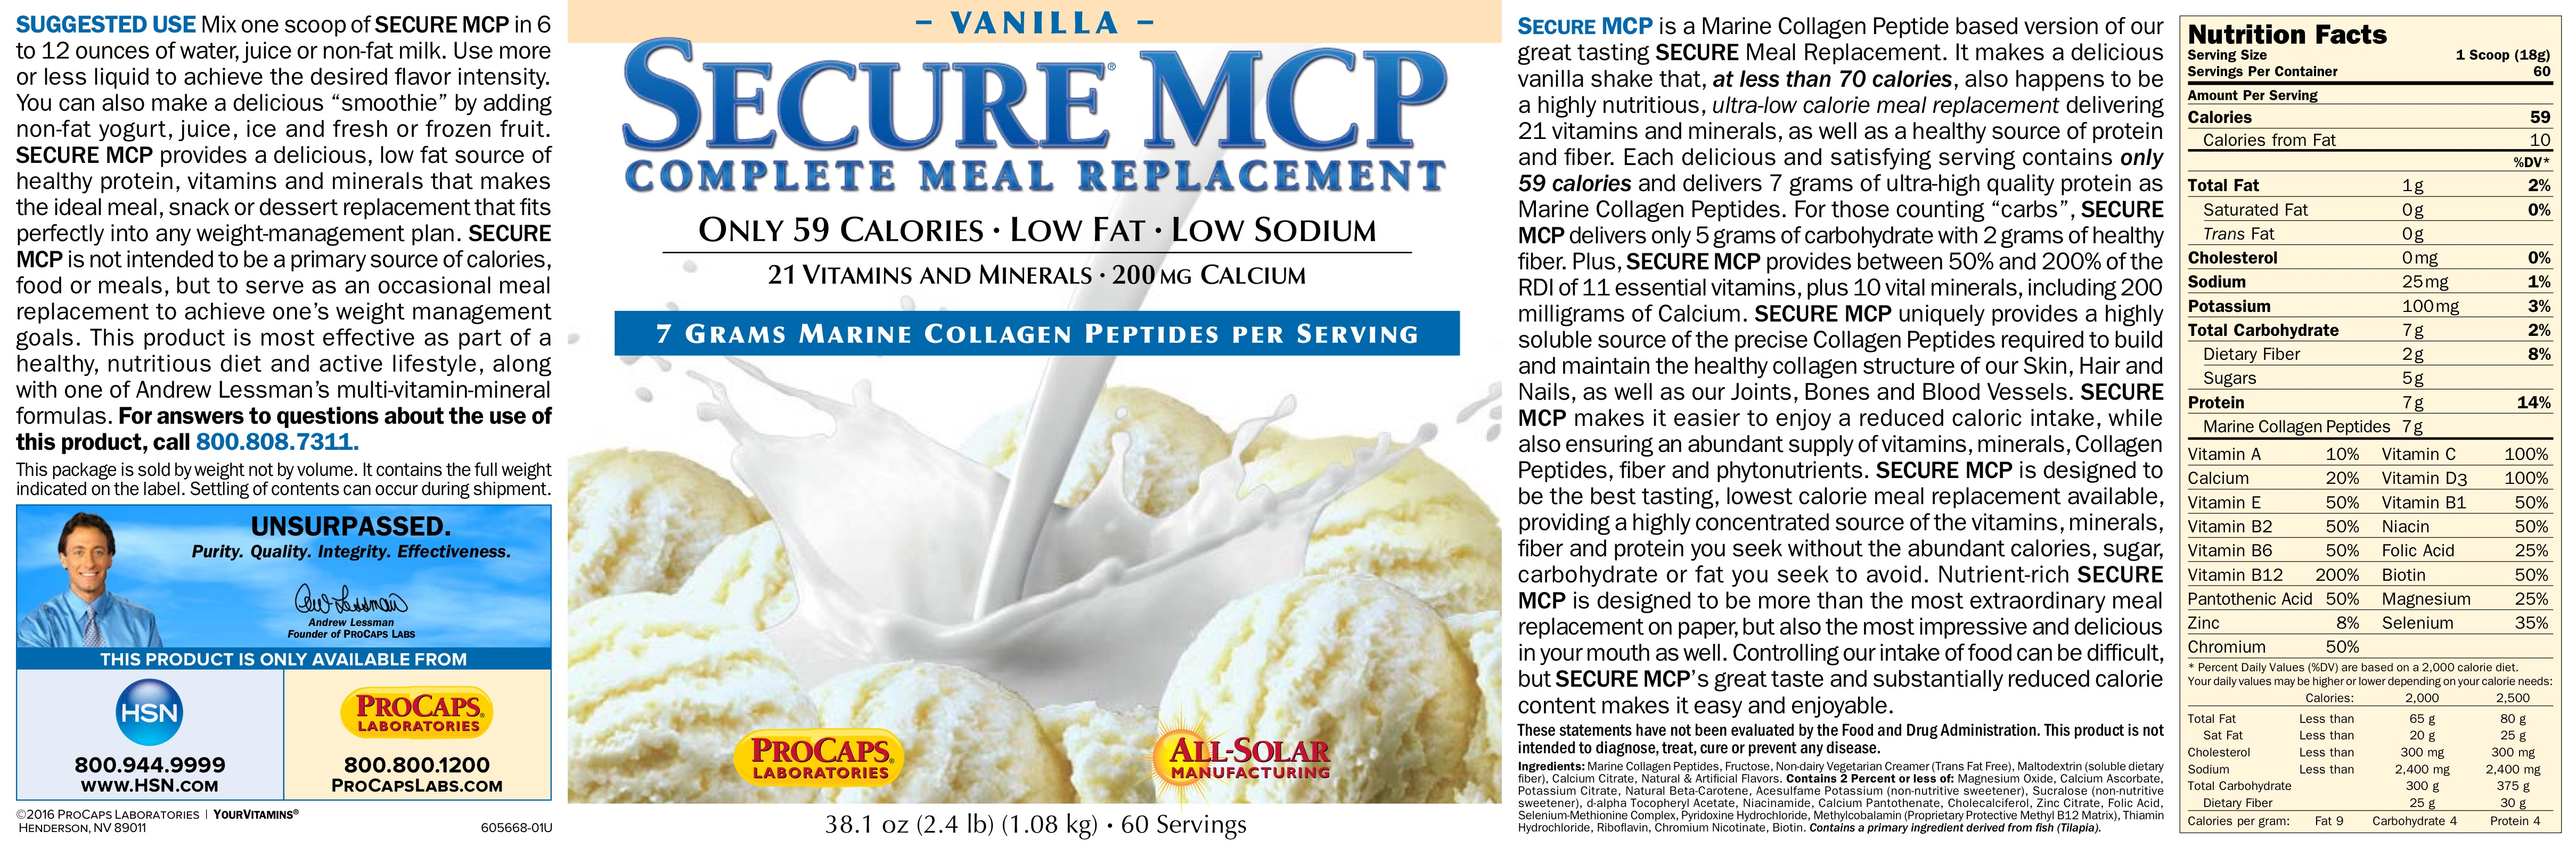 This is an image of Fabulous Meal Replacement Private Label